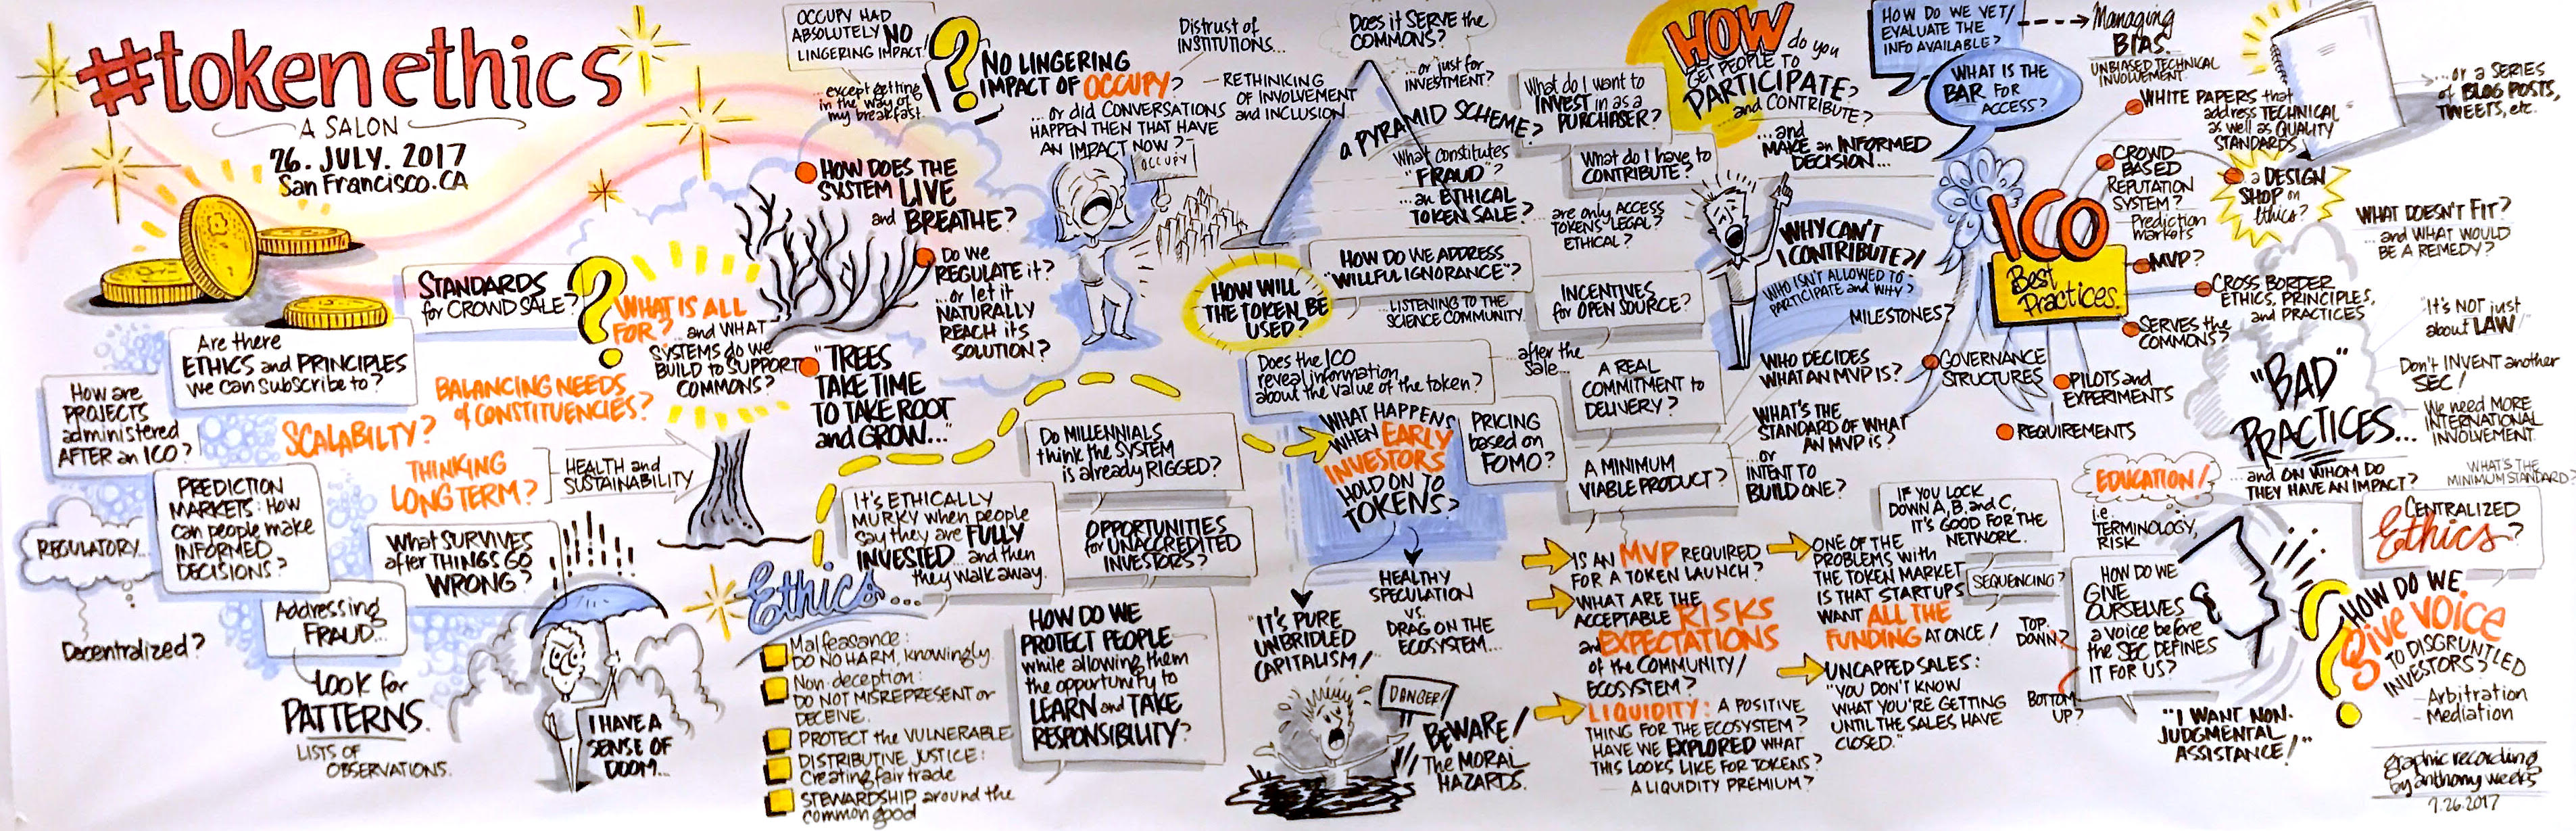 #TokenEthics Salon Graphic Recording